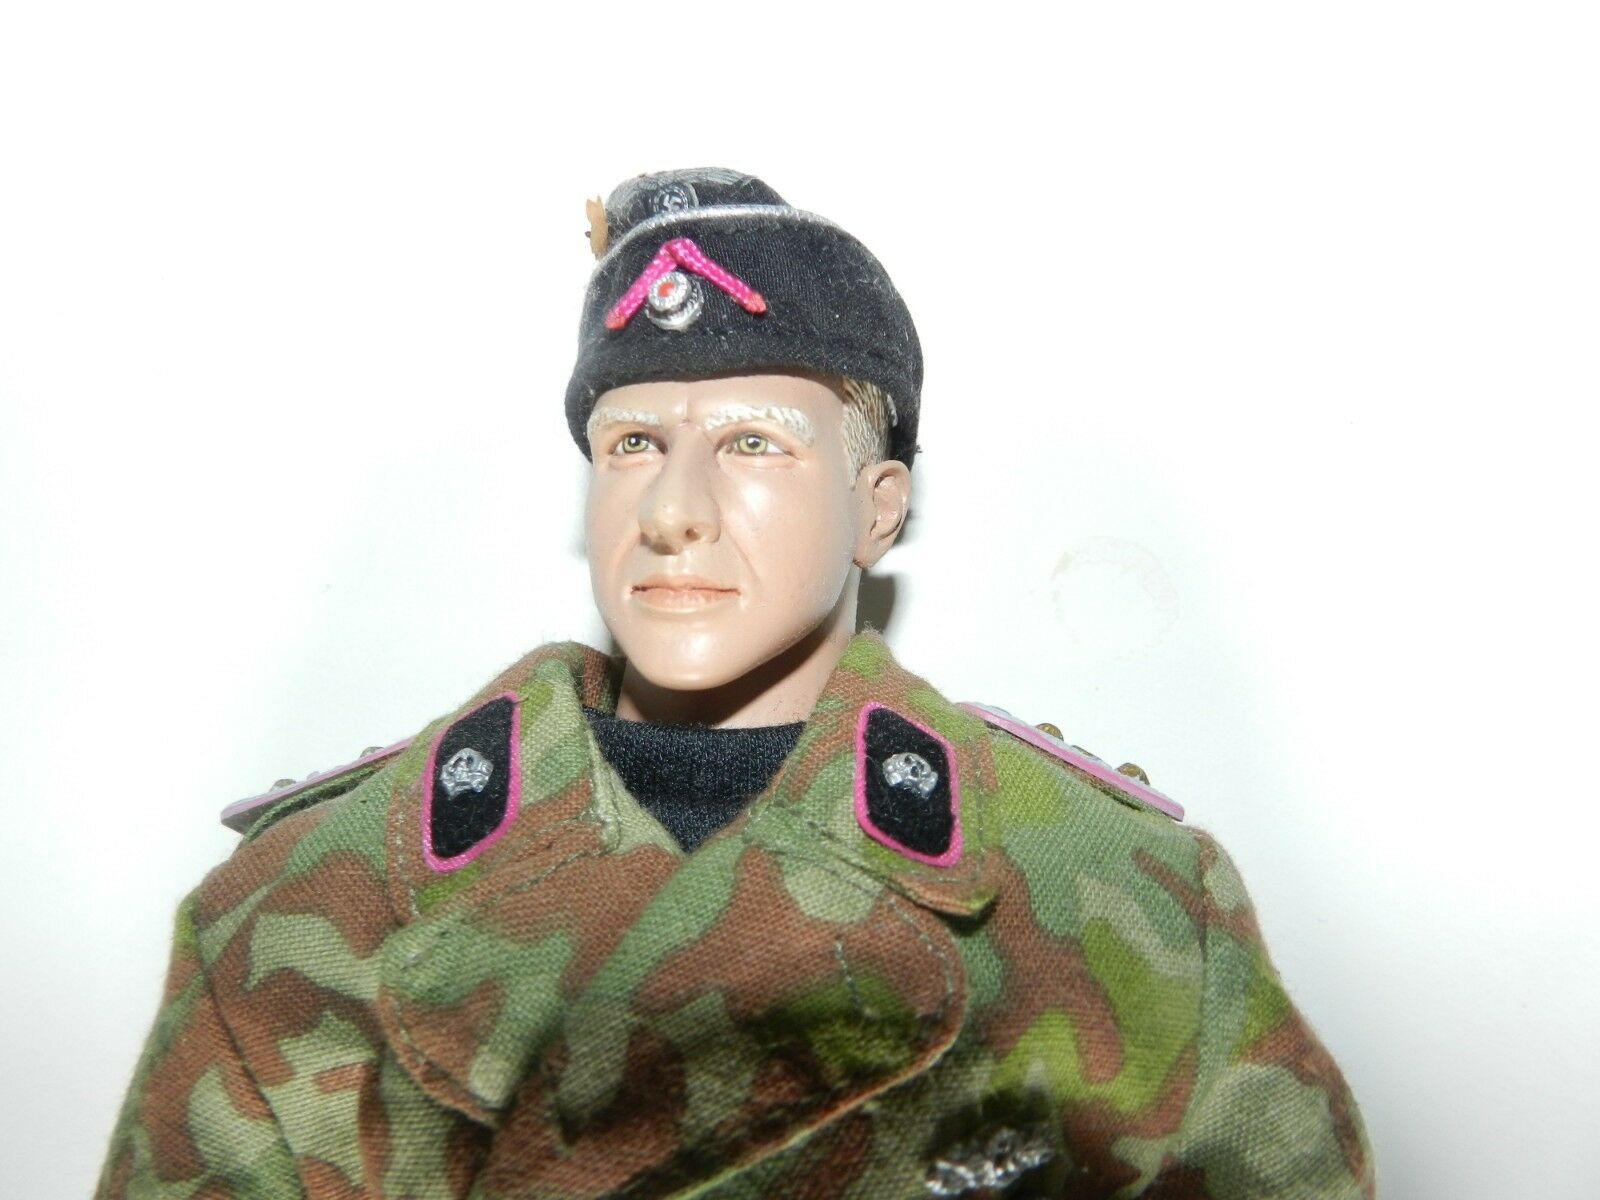 1 6 SCALE ITPT   WW2 GERMAN PANZAR OFFICER IN CAMMO